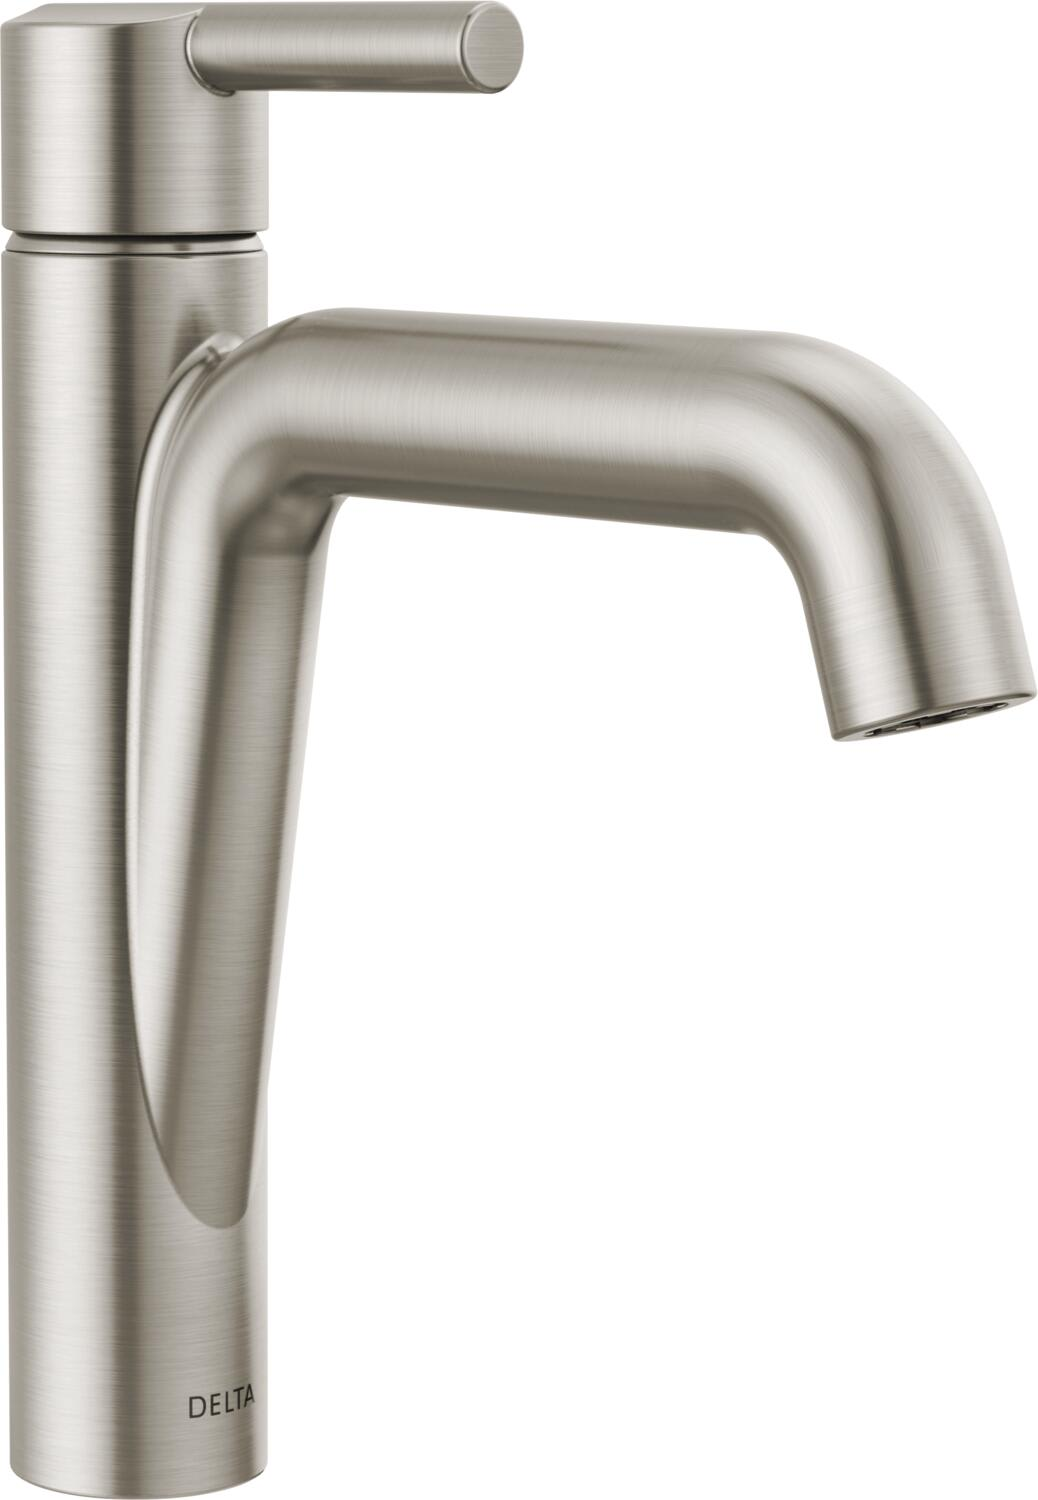 Delta 15849lf Ss Brilliance Stainless Nicoli 1 2 Gpm Single Hole Bathroom Faucet With Pop Up Drain Assembly Faucet Com